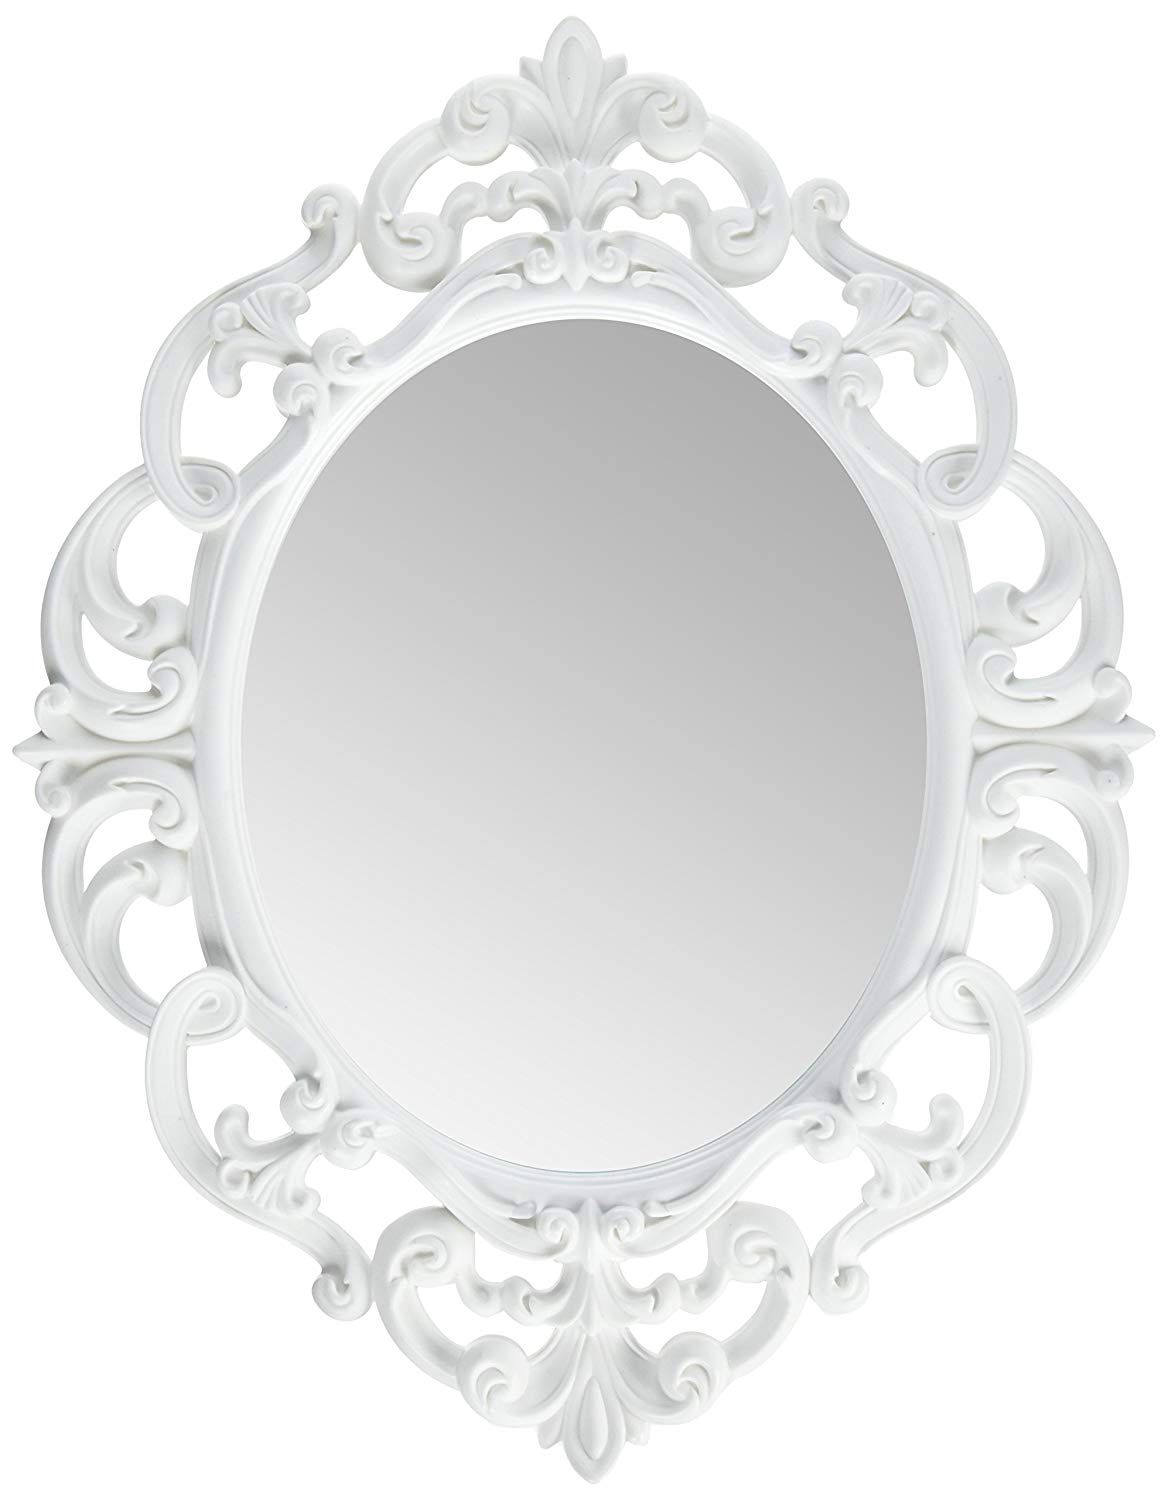 Oval Wall Mirrors Within Newest Kole White Oval Vintage Wall Mirror (View 16 of 20)